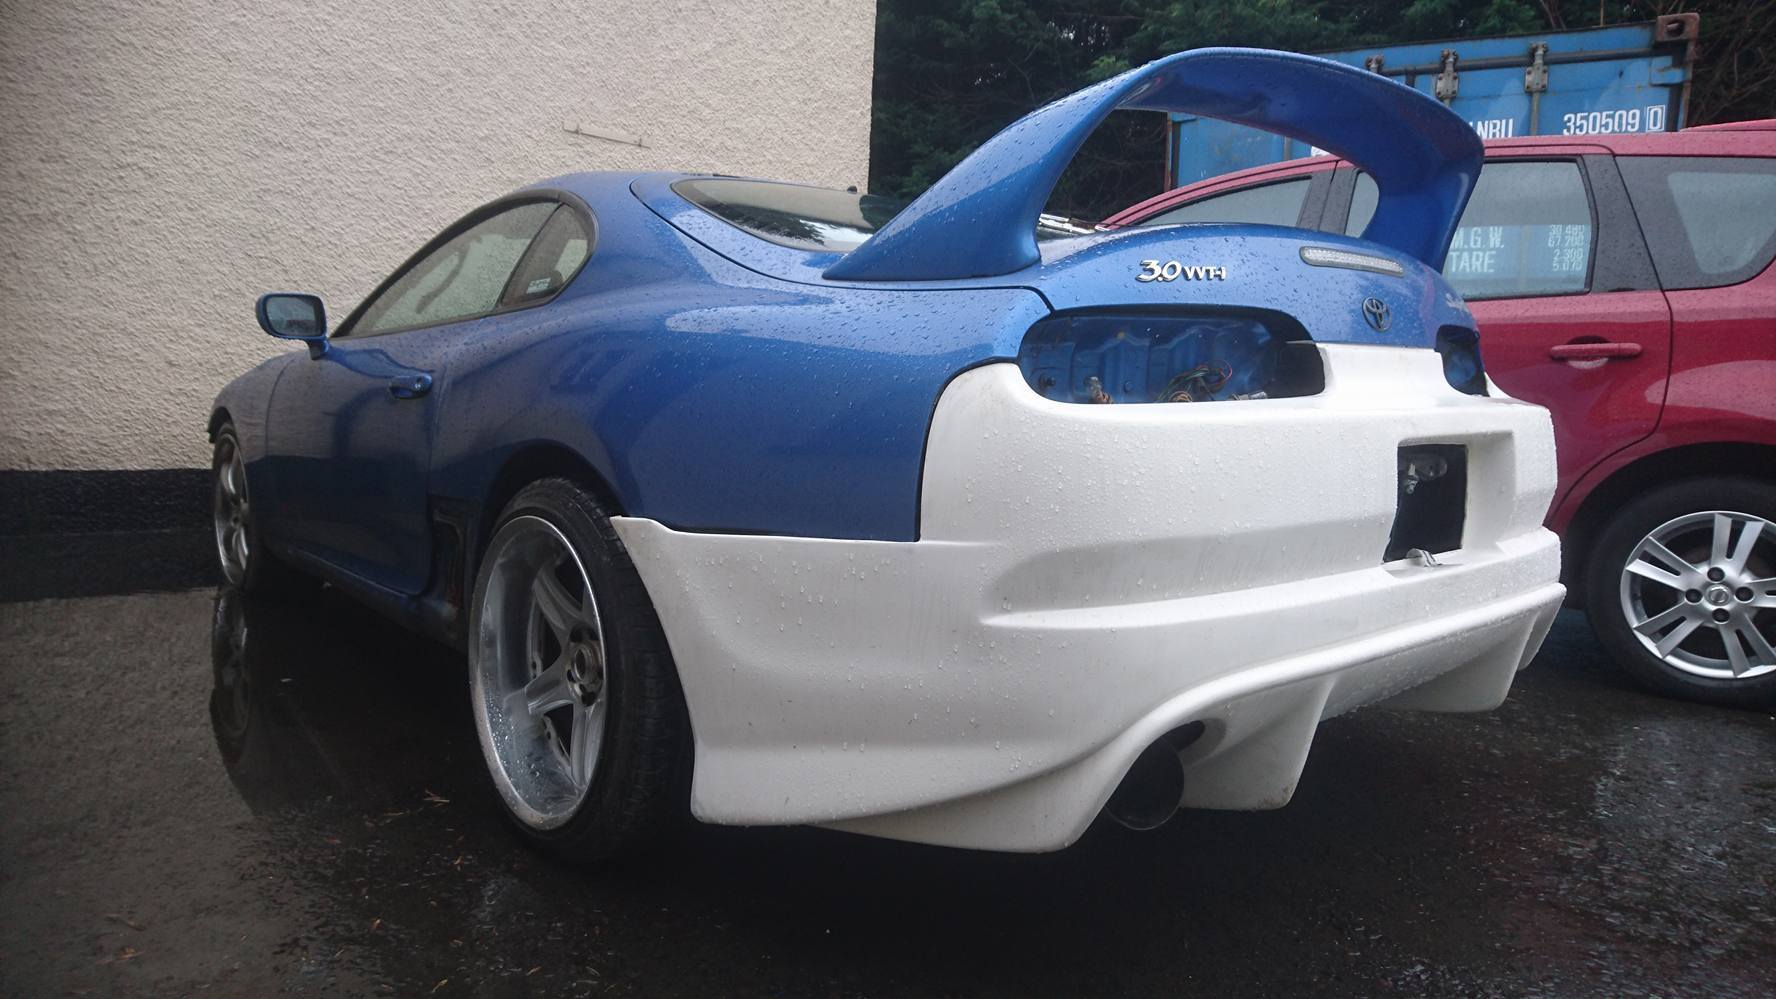 Kenny Wylie Test fitting Mario Supra body Kit